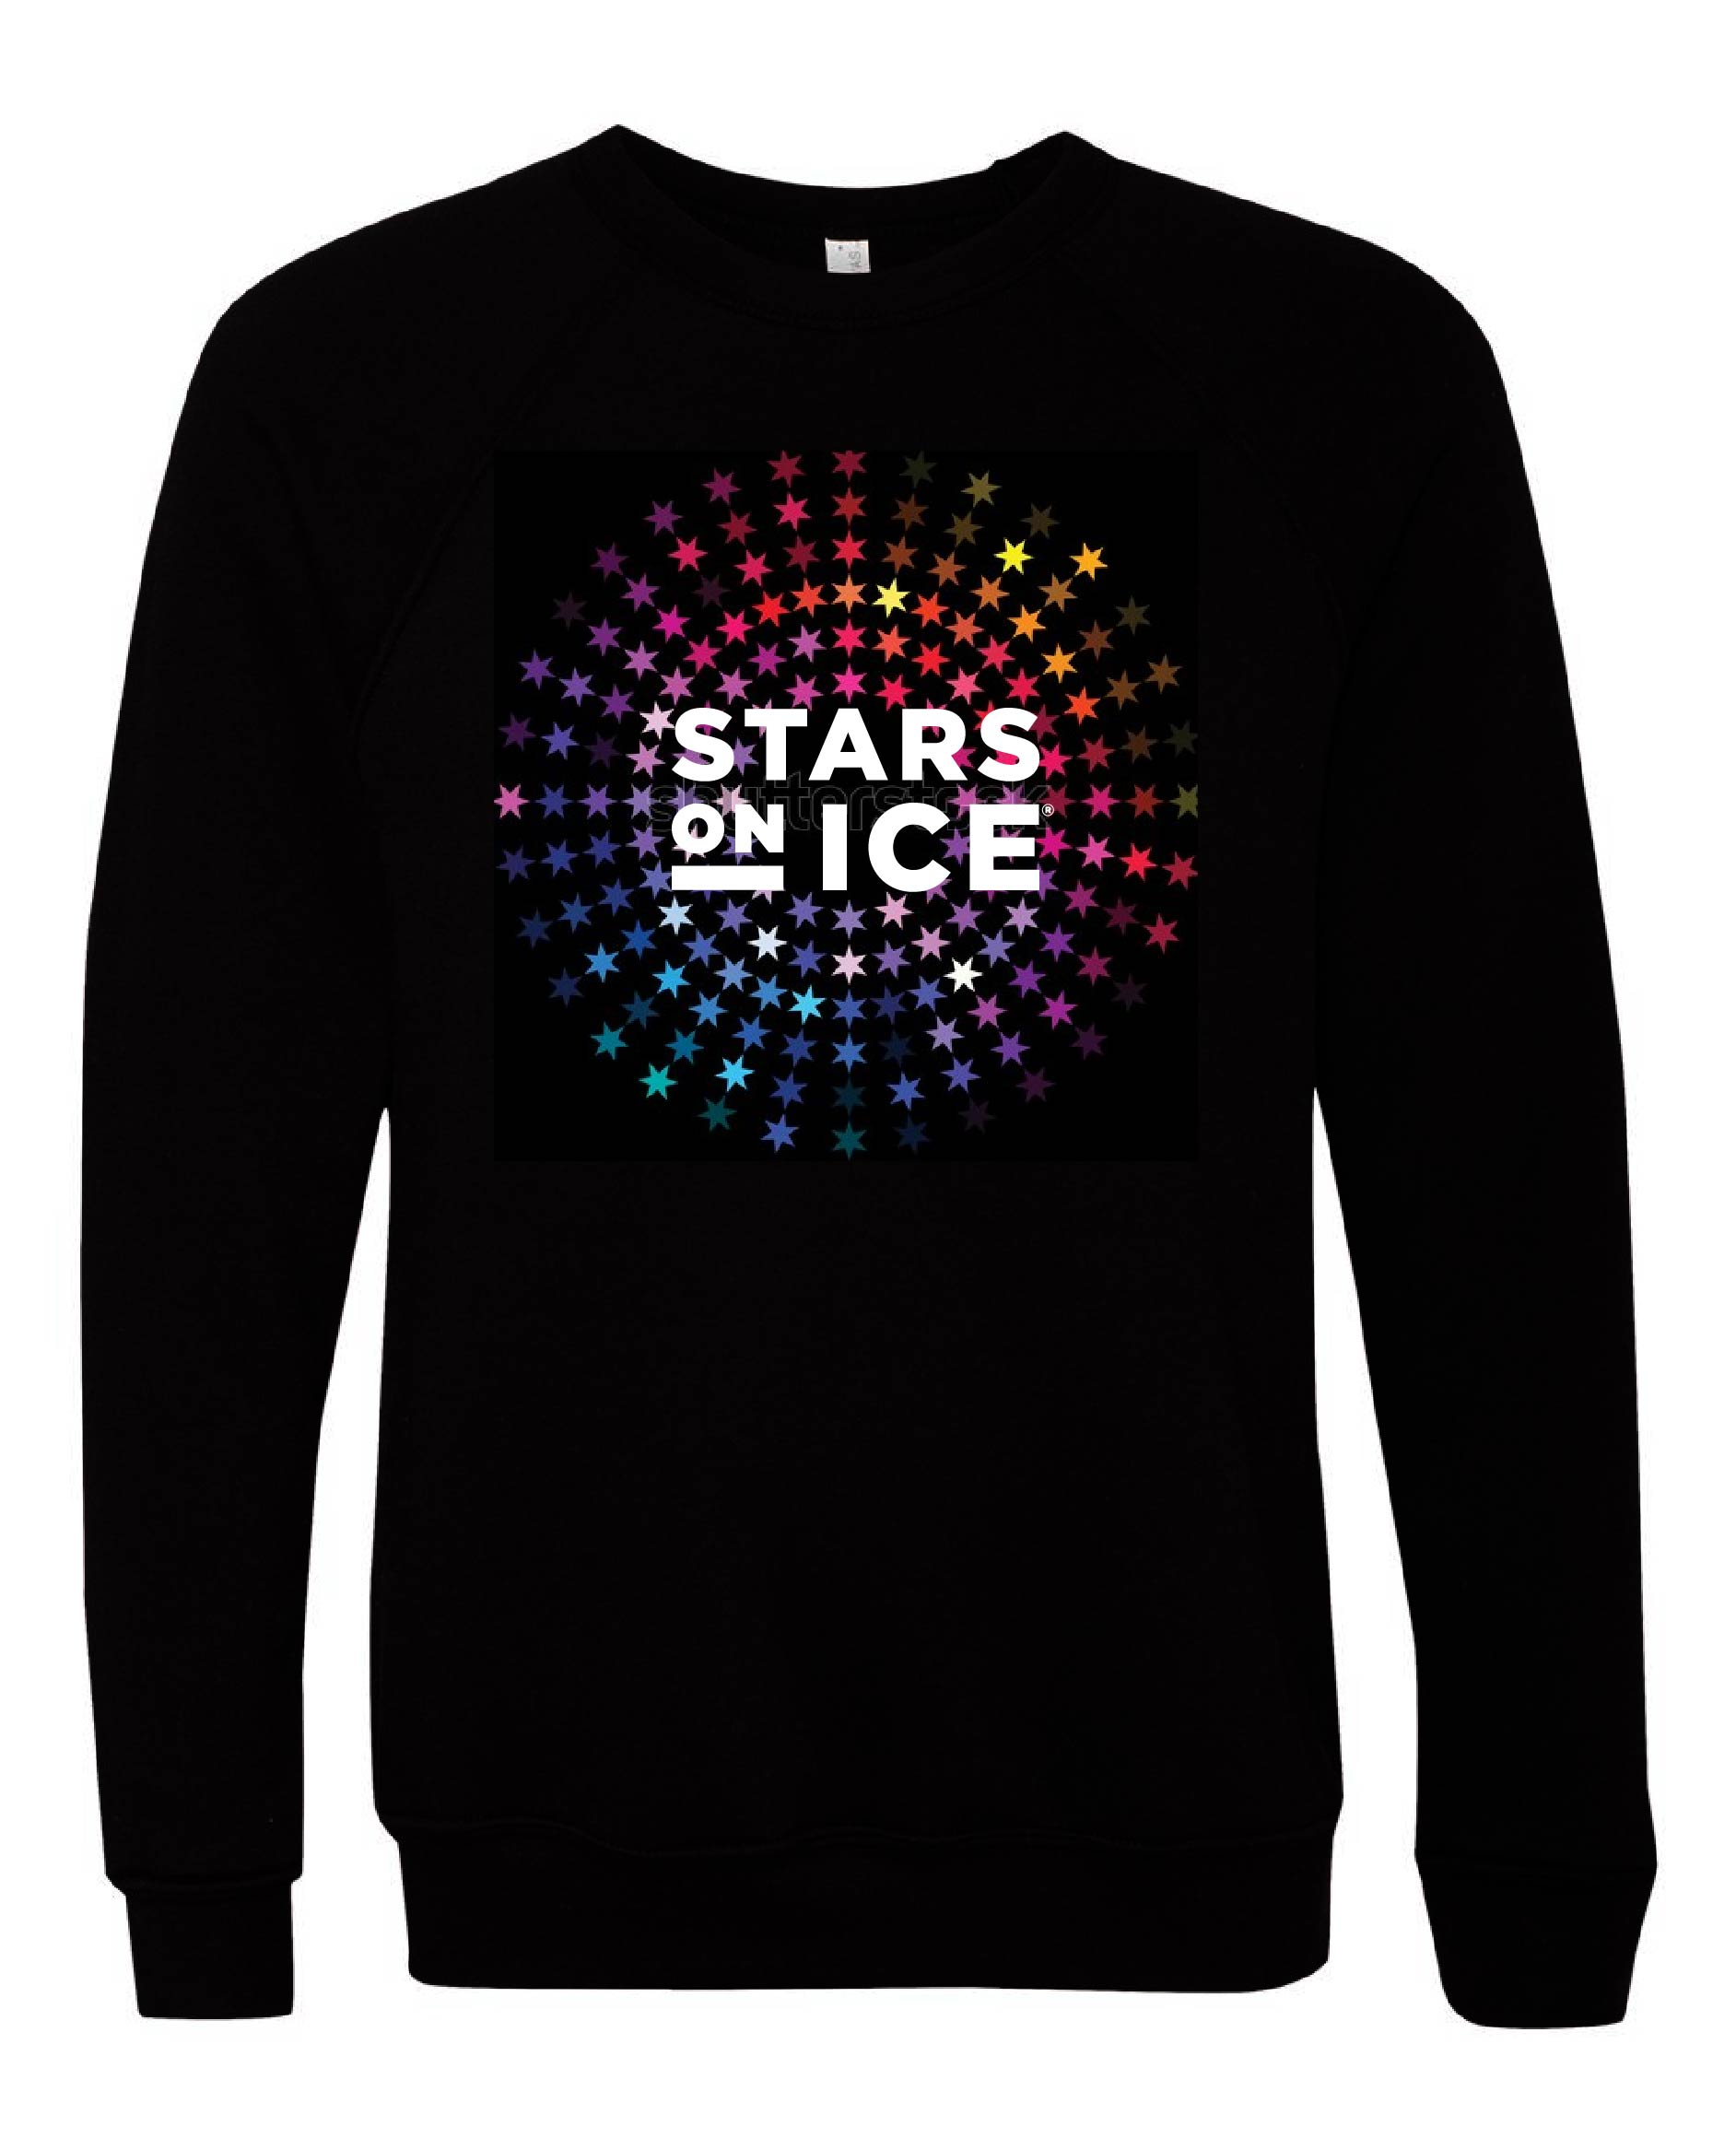 2019 Stars on Ice Tour Sweatshirt